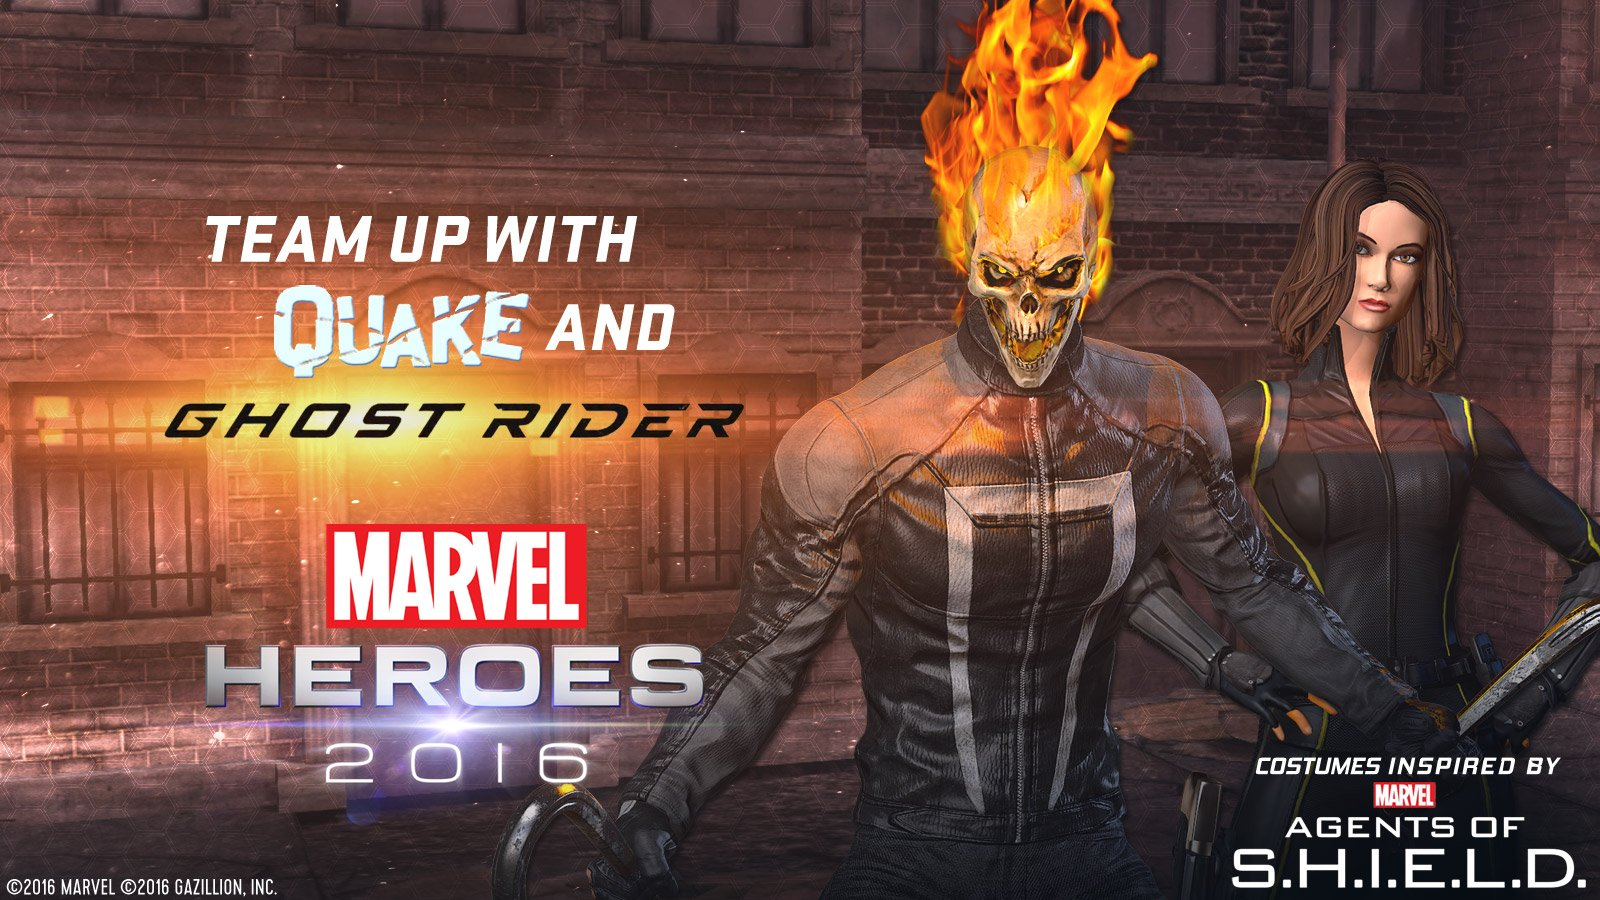 Team-up with Ghostrider and Quake